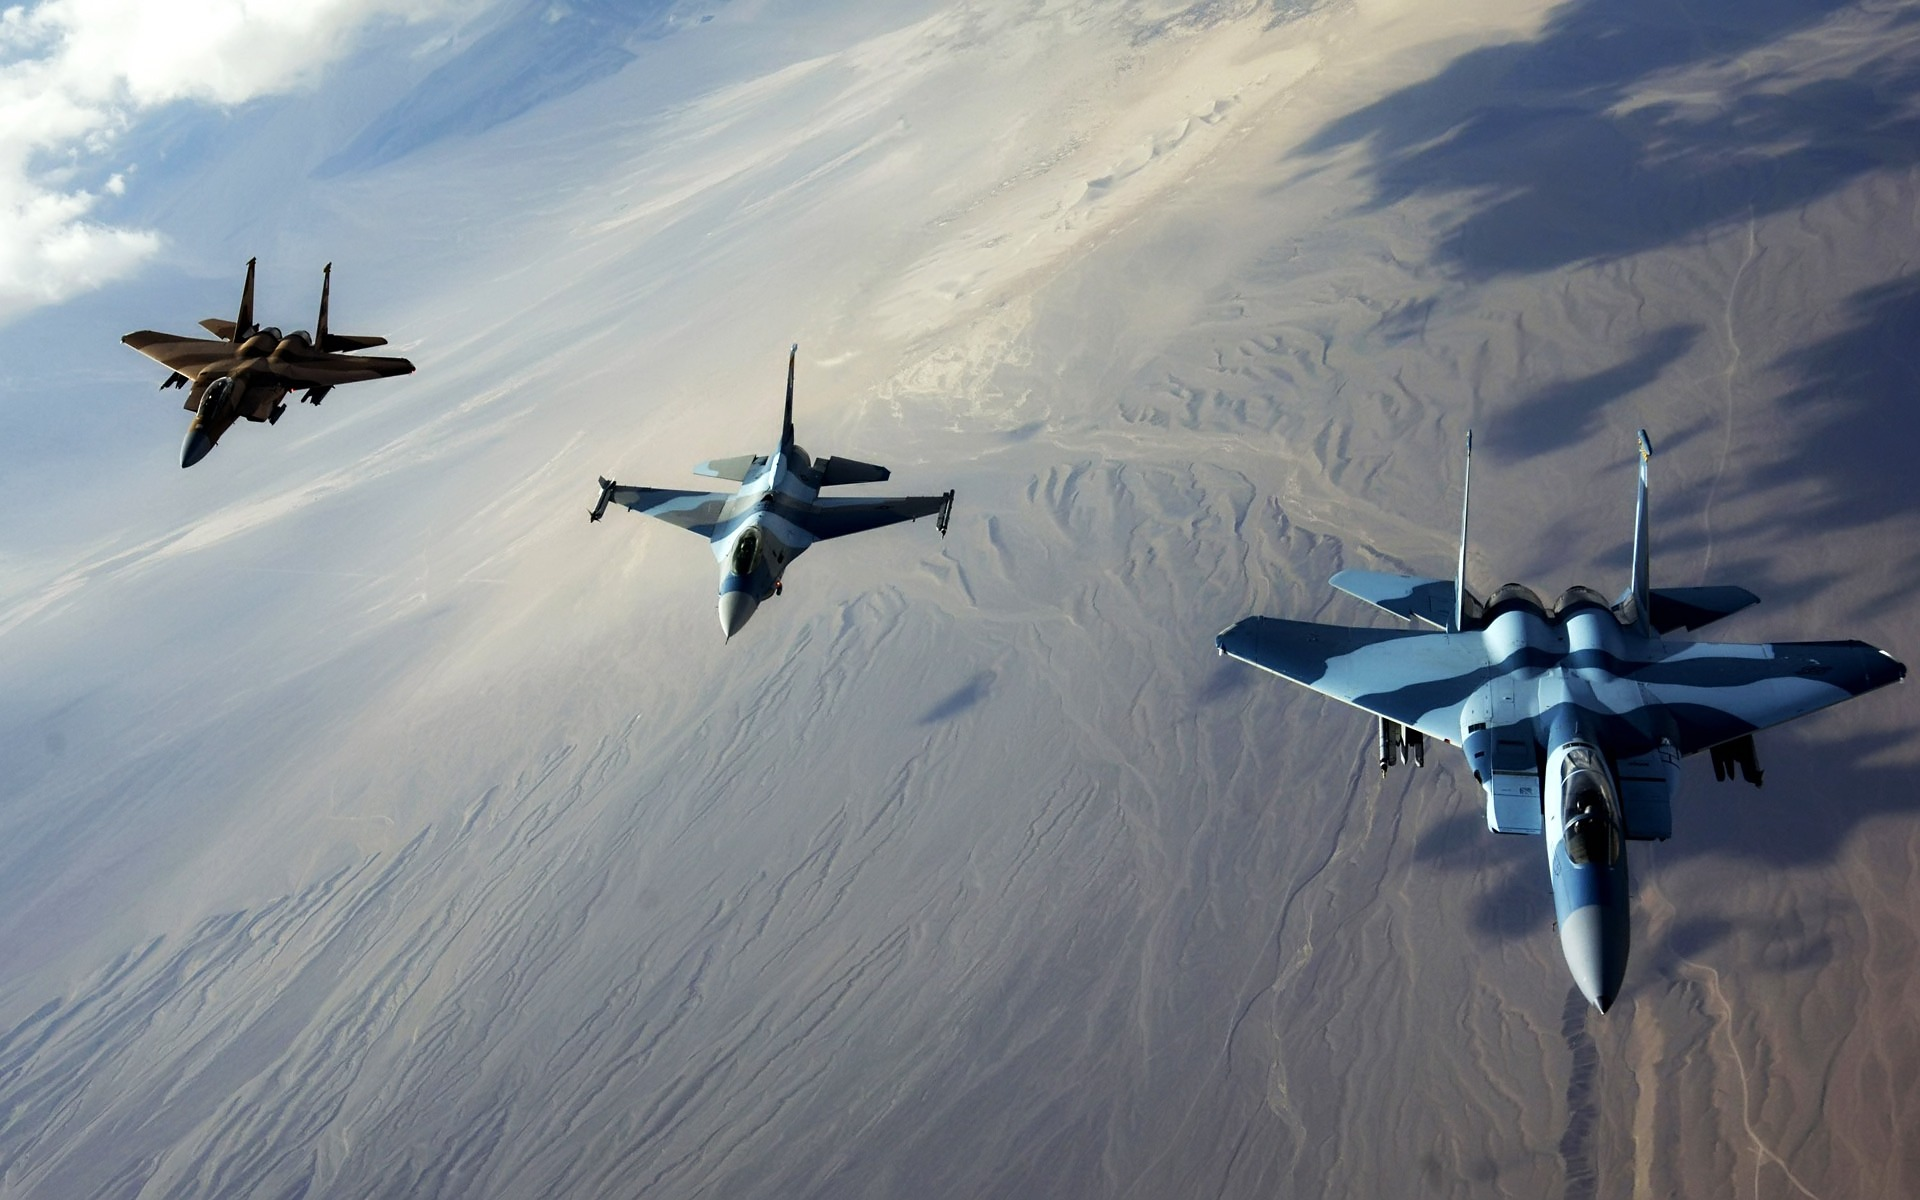 100 Beautiful Fighter Jets Photos Pexels Free Stock Photos Fighter planes pictures free